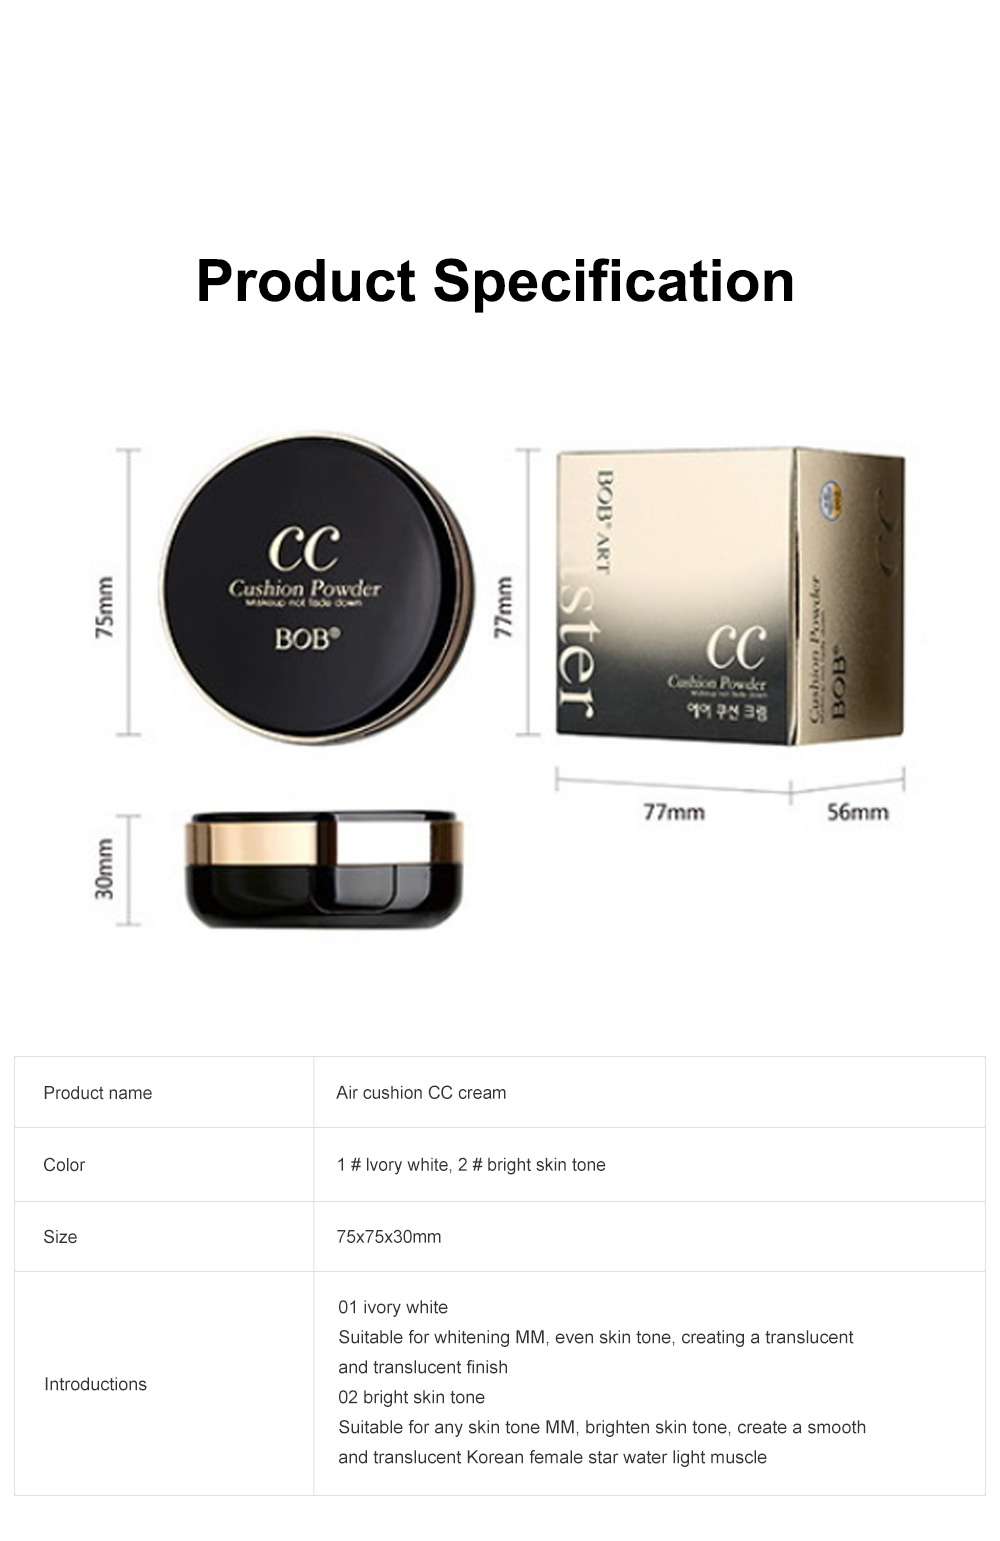 Skin Rejuvenating Air Cushion Daily Color Correcting CC Cream Send Replacement Waterproof Moisturizing Concealer Nude Makeup Cream 8